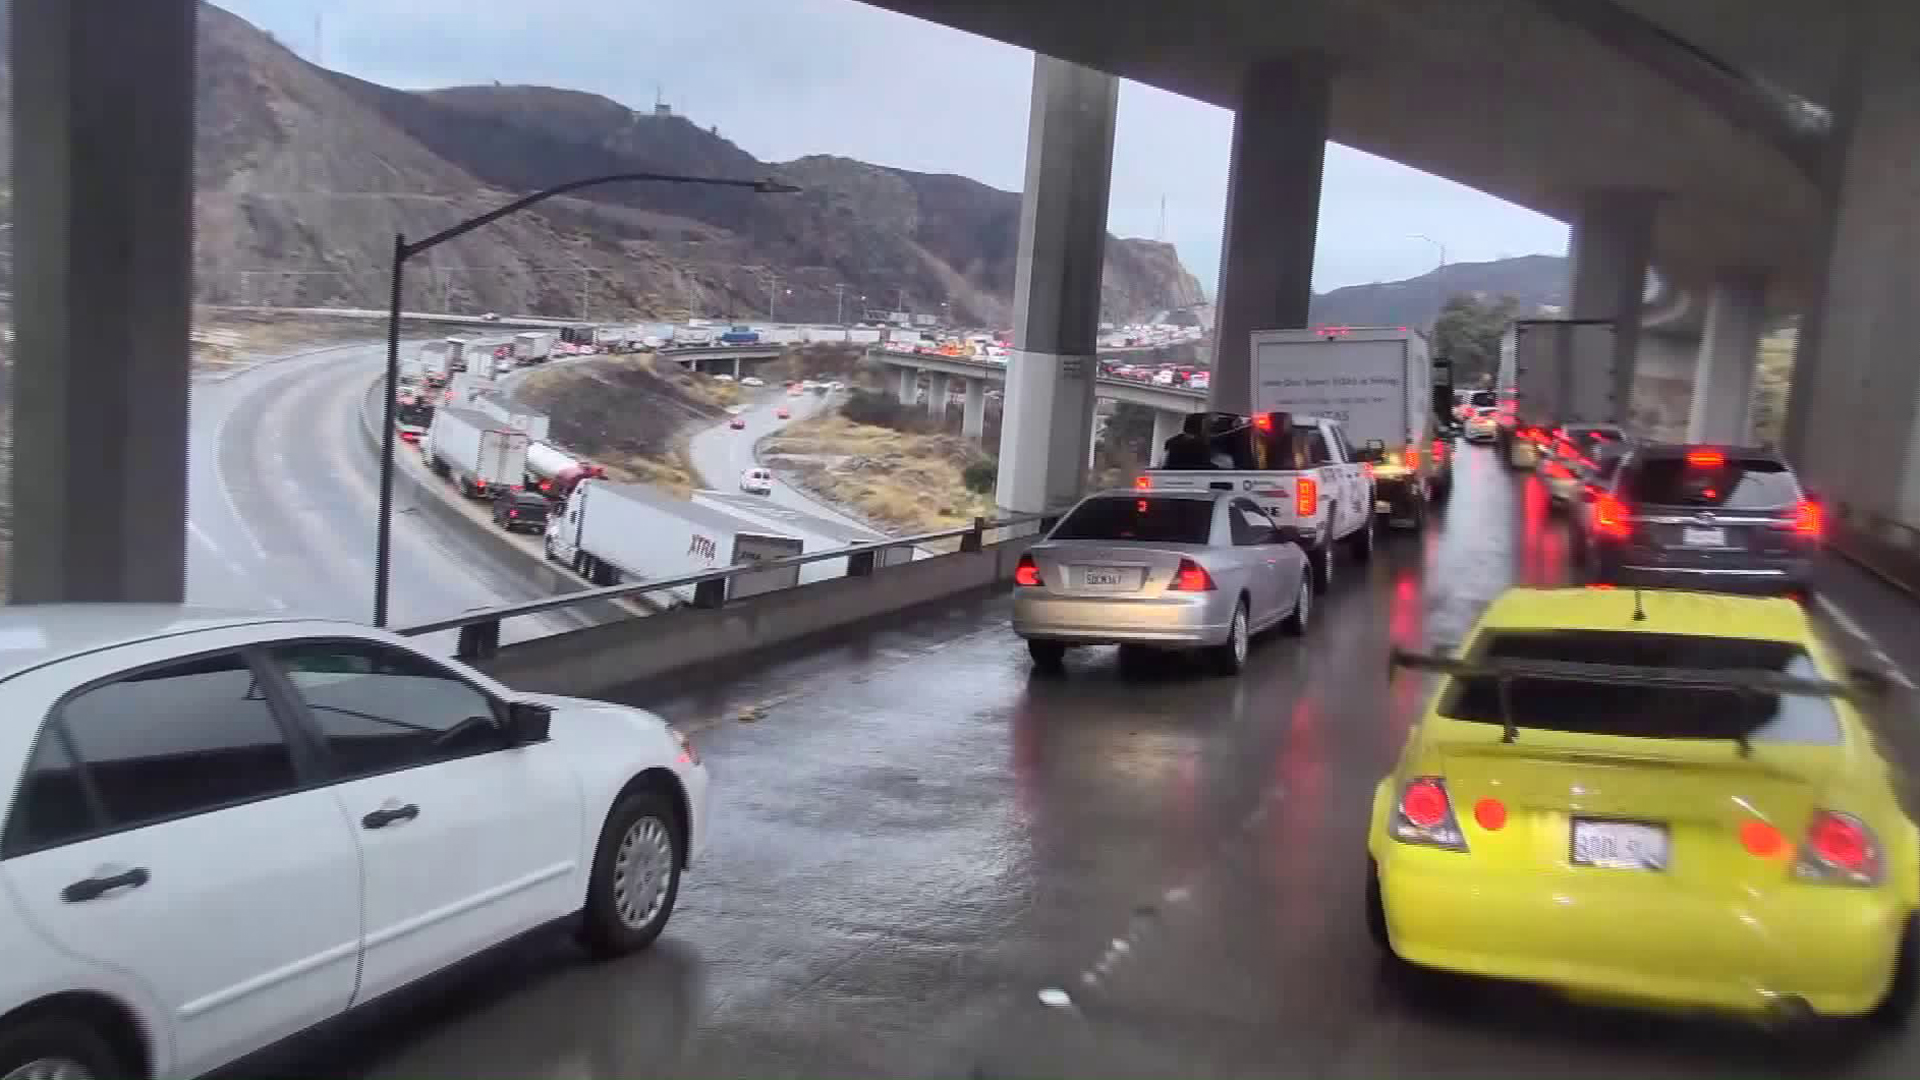 Commuters go through the 5 Freeway in the Sylmar area as rain pounded Southern California on Dec. 4, 2019. (Credit: KTLA)